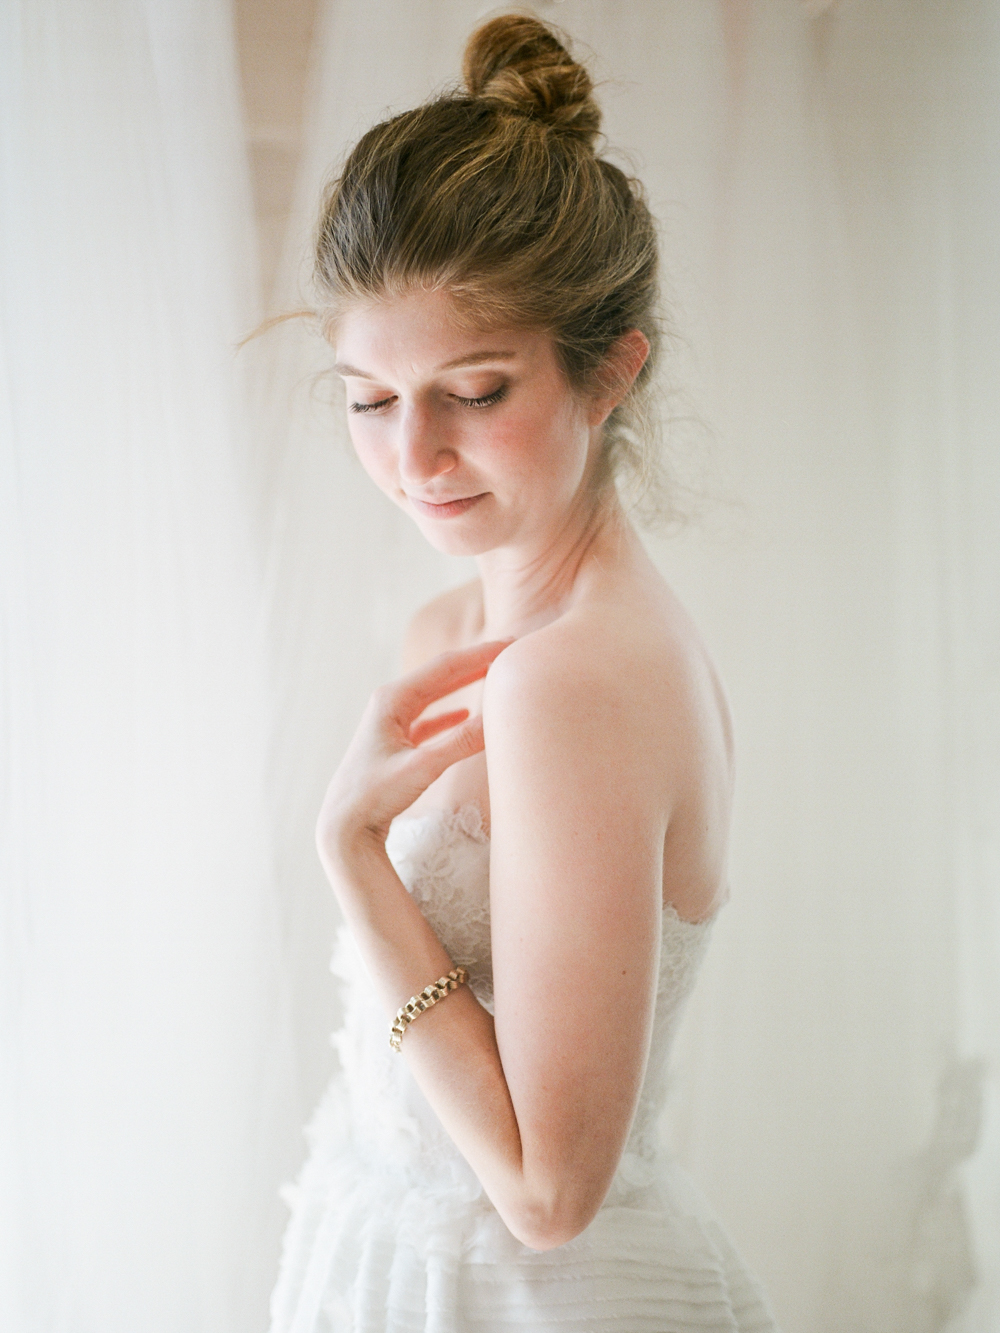 Christine Gosch - destination film photographer - houston wedding photographer - fine art film photographer - elopement photographer - destination wedding - understated wedding - simple beautiful wedding photography-16.jpg